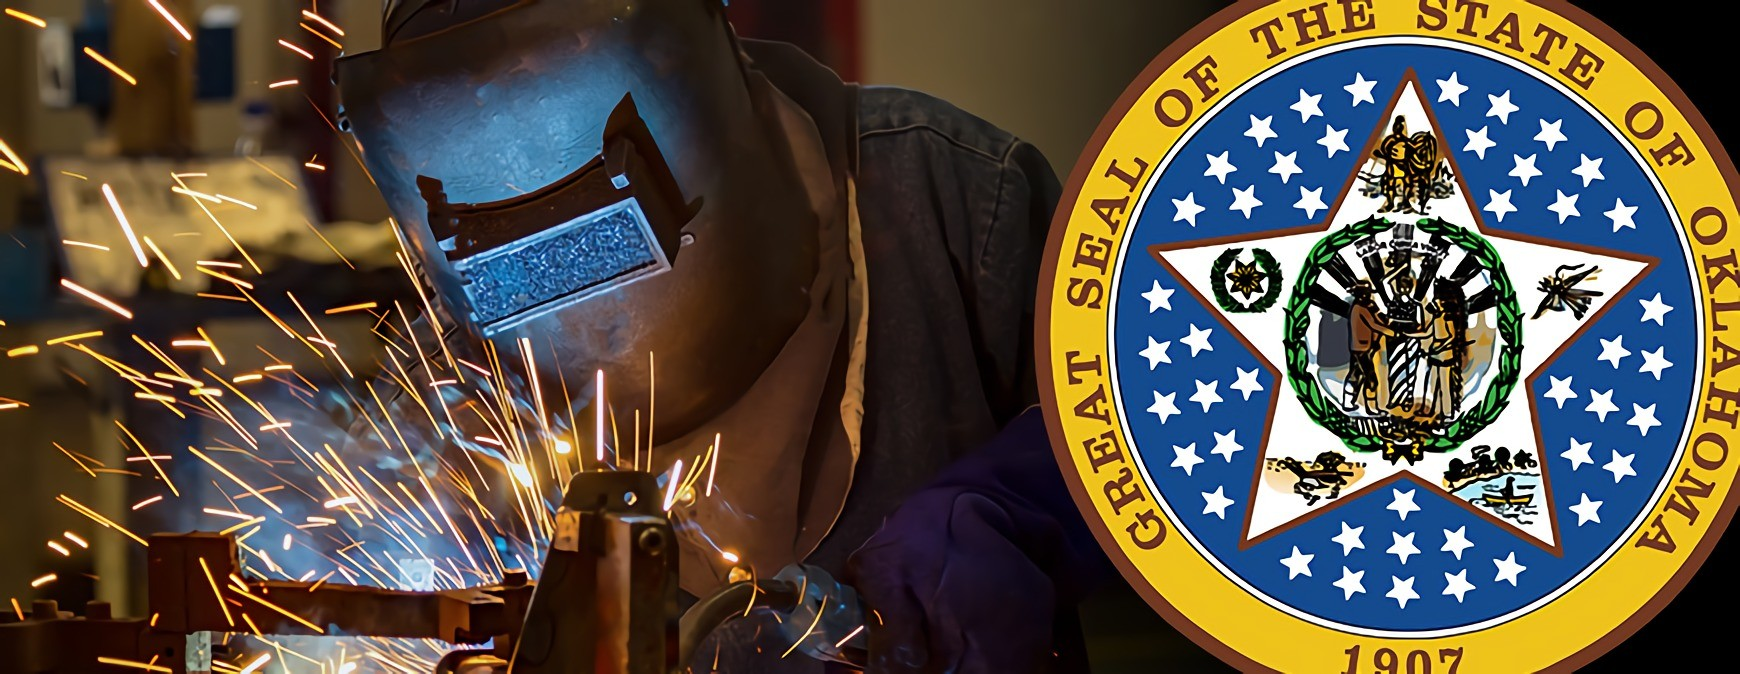 oklahoma state seal and skilled worker